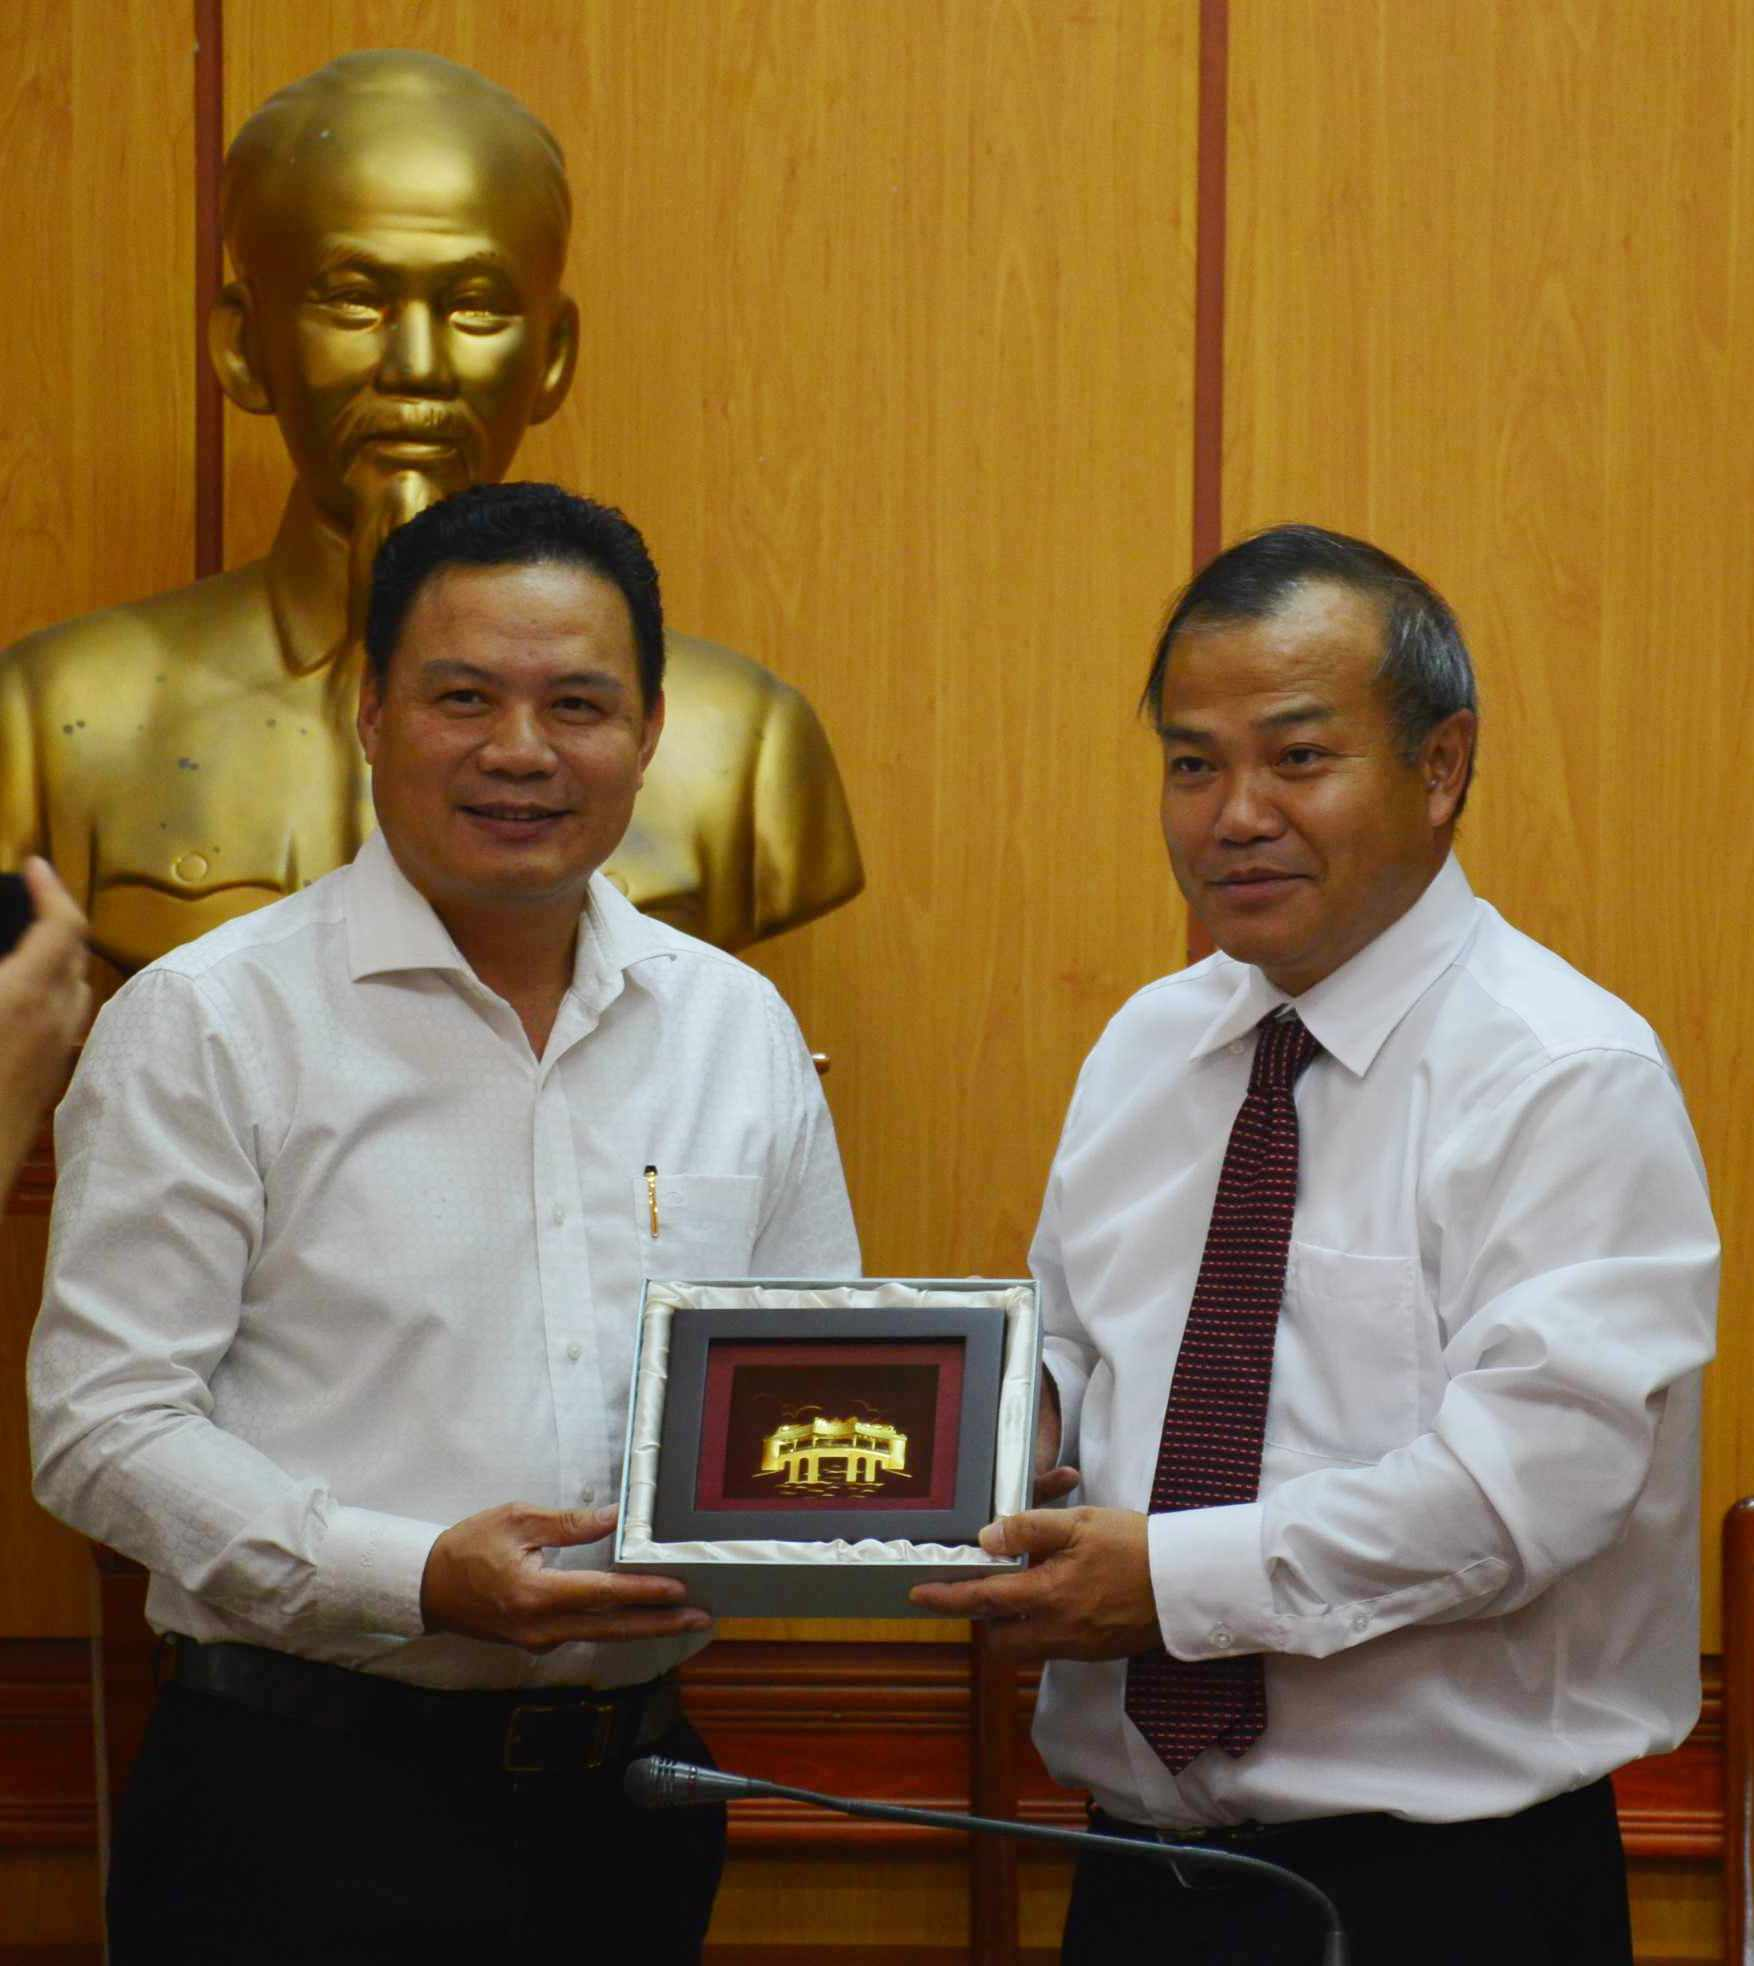 Vice Chairman of the Quang Nam provincial People's Committee gives a gift to Mr. Nam.